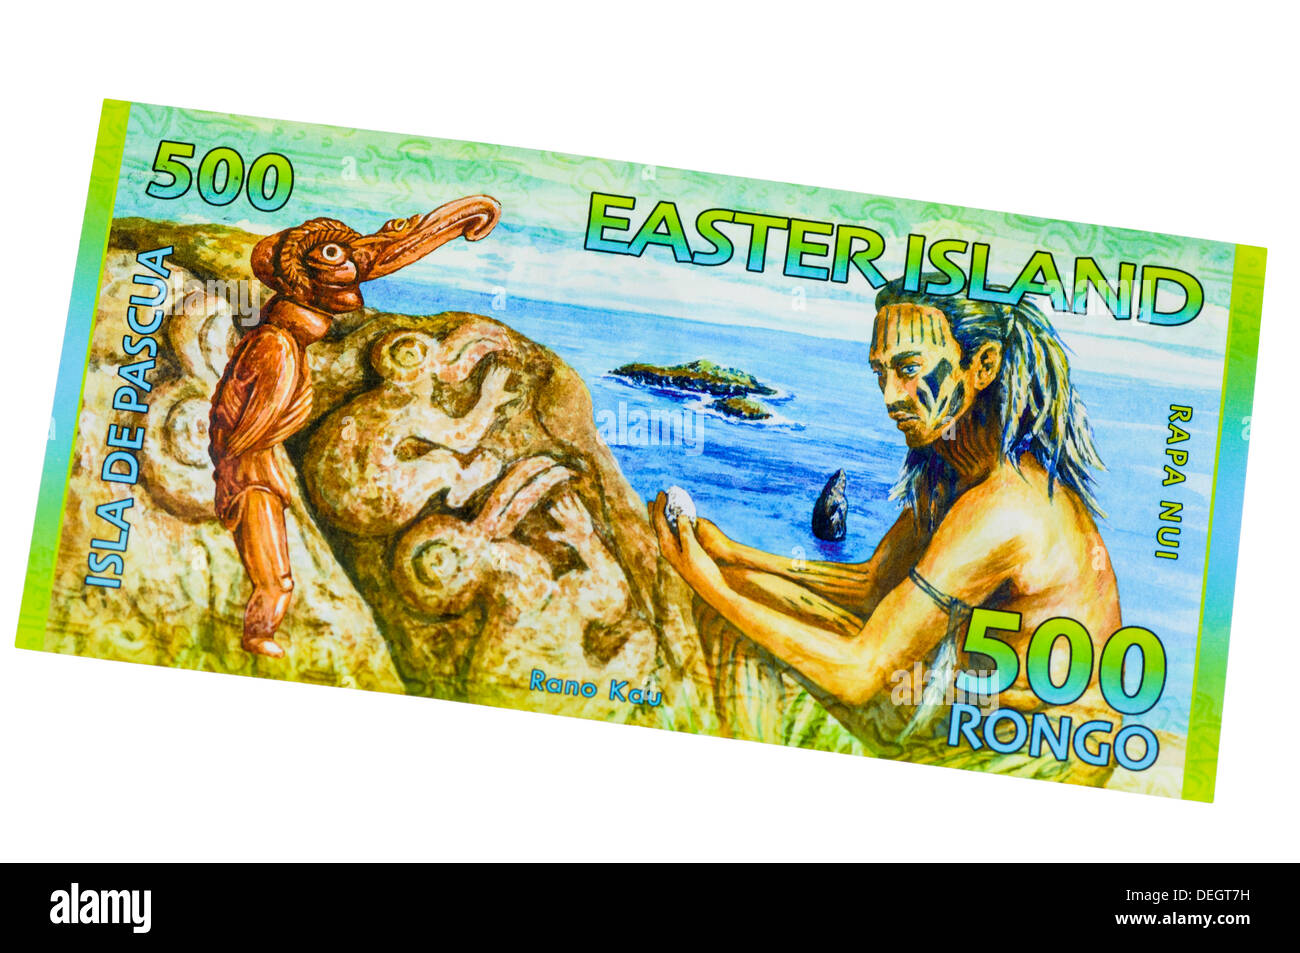 Easter Island 500 Rongo polymer (plastic) bank note - Stock Image